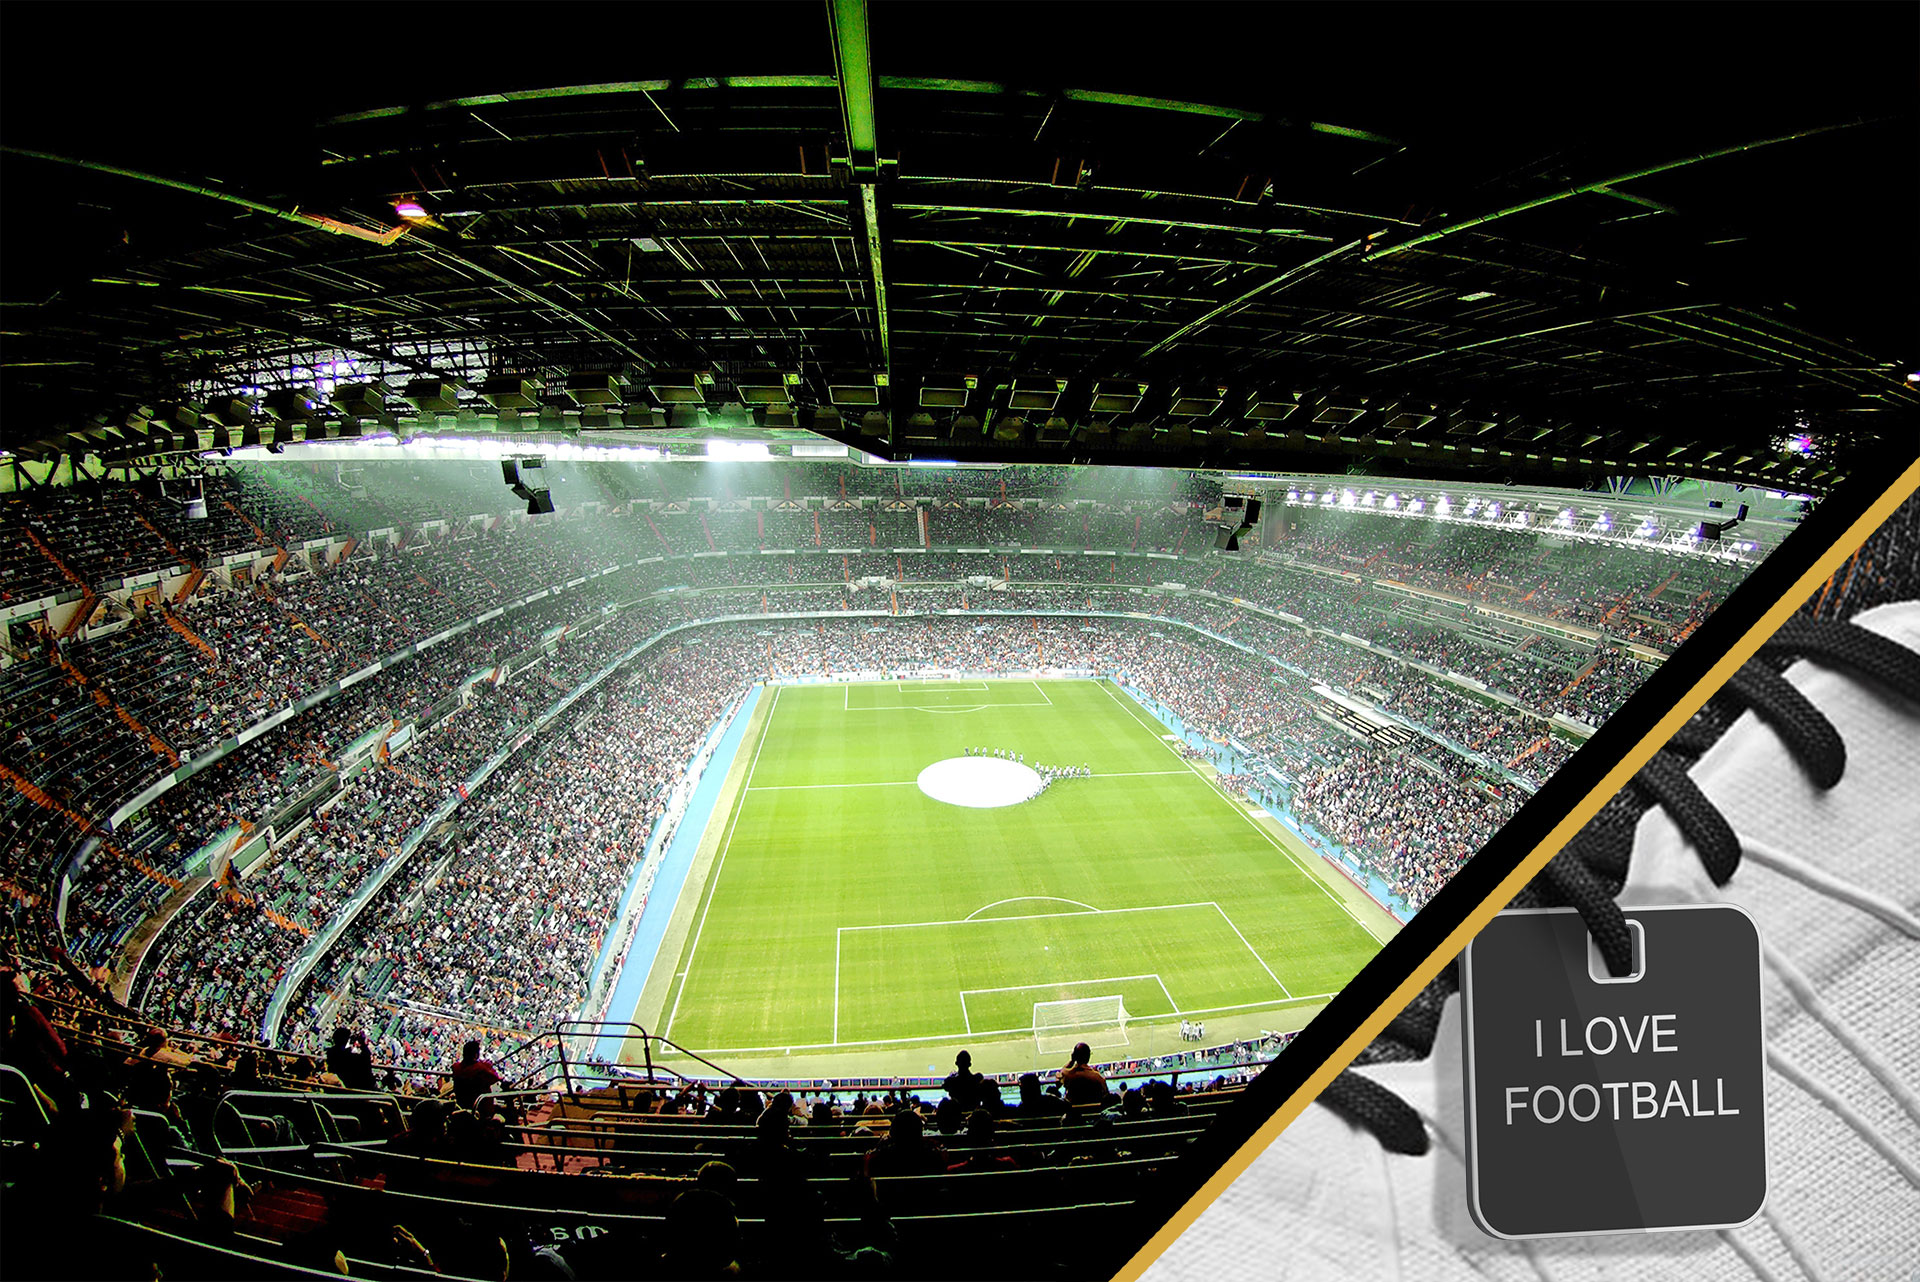 Overview of a football stadium on the evening of a competition with a personalized keyring